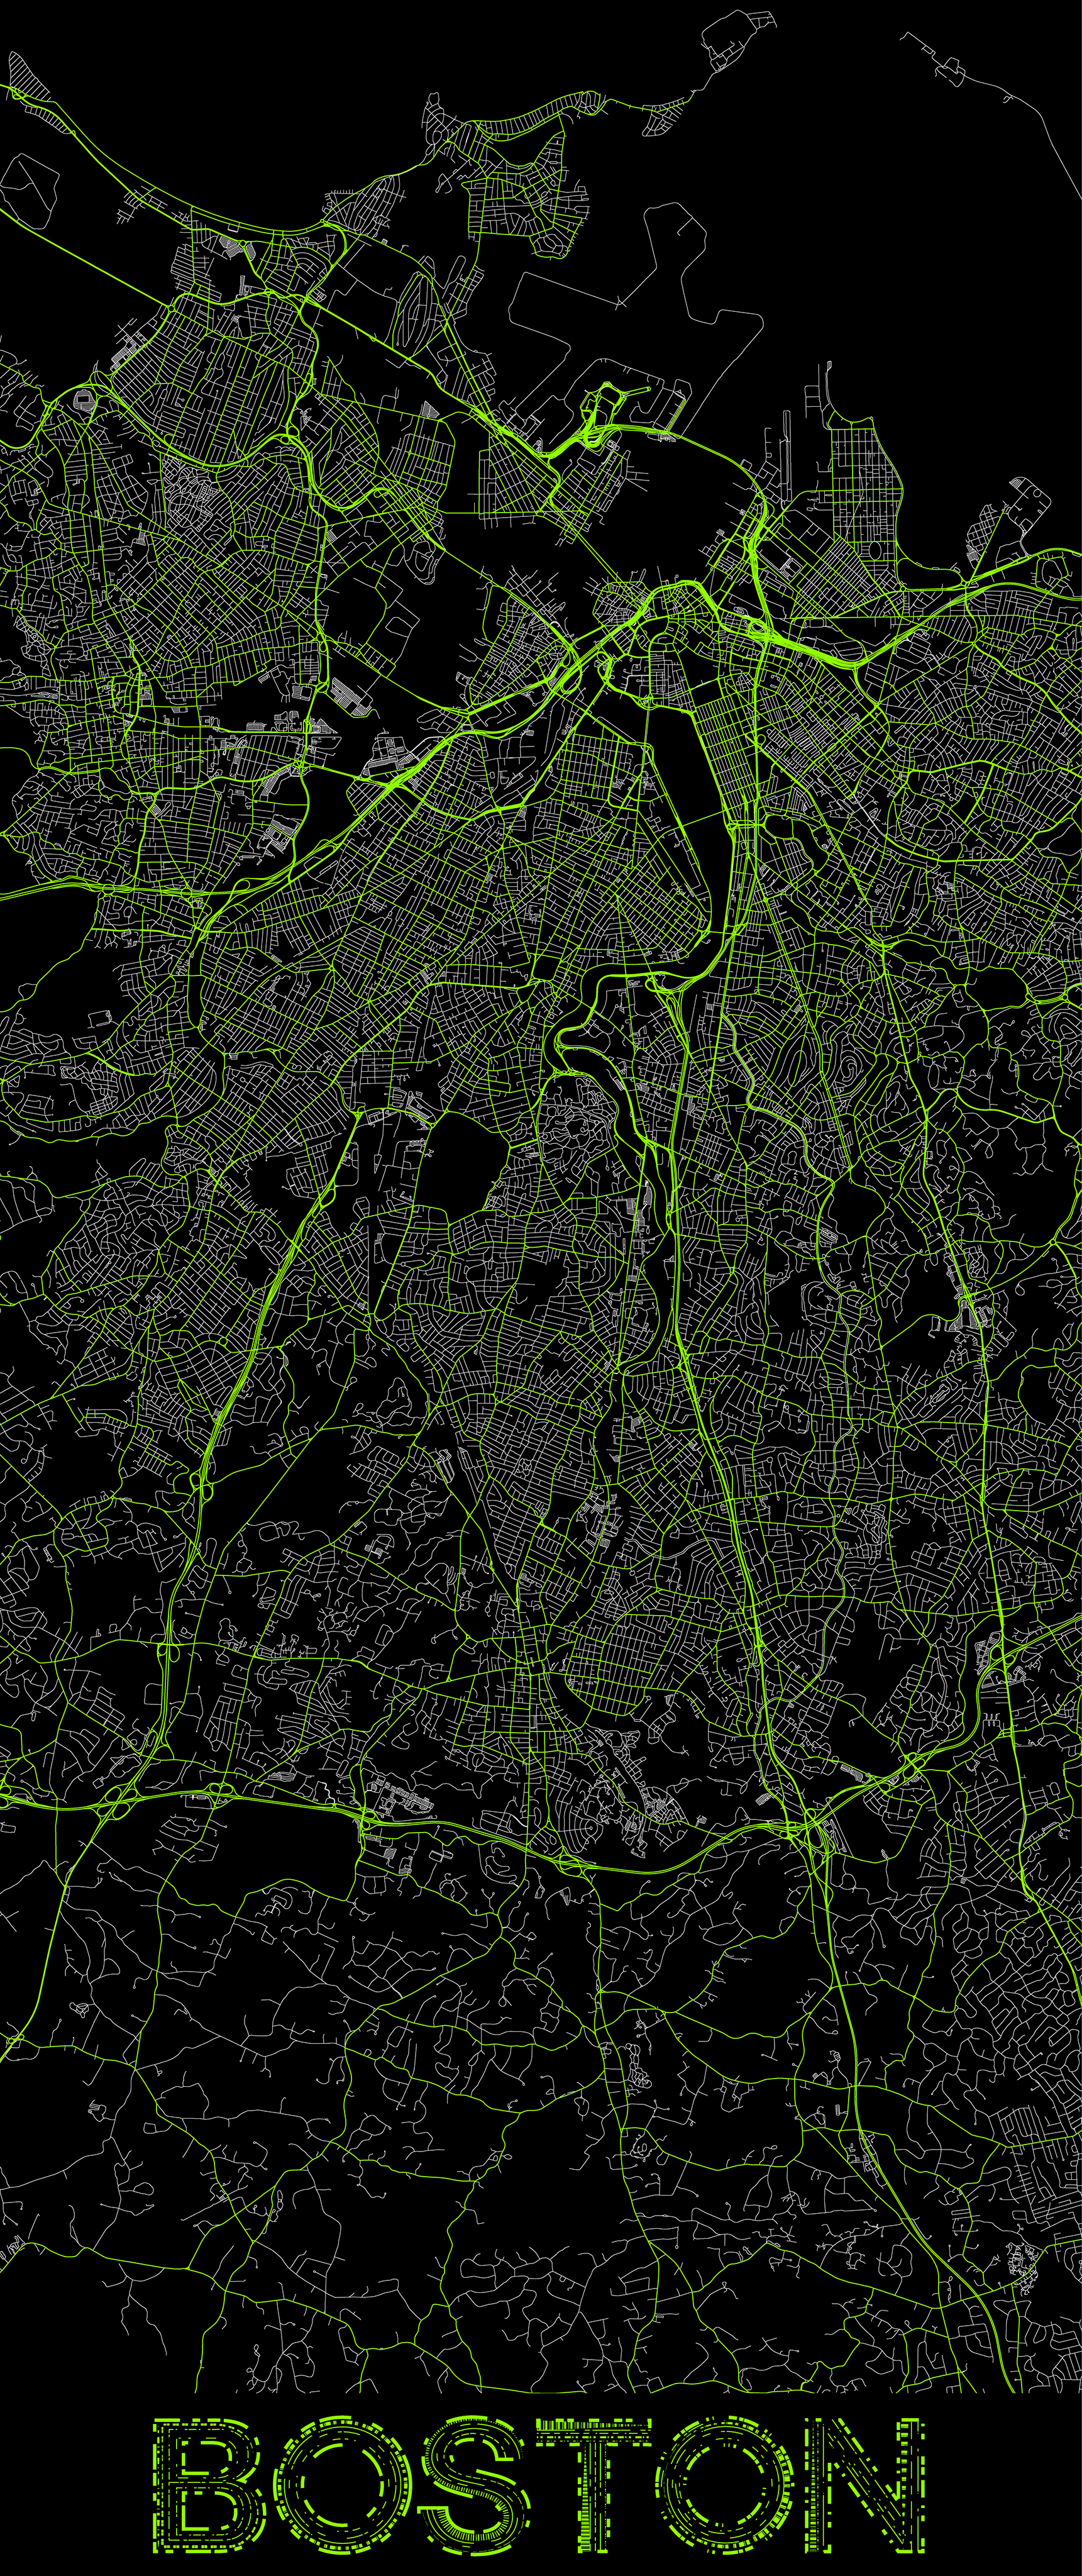 City map illustration of Boston created using Maperitive, OpenStreetMap and Adobe Illustrator.